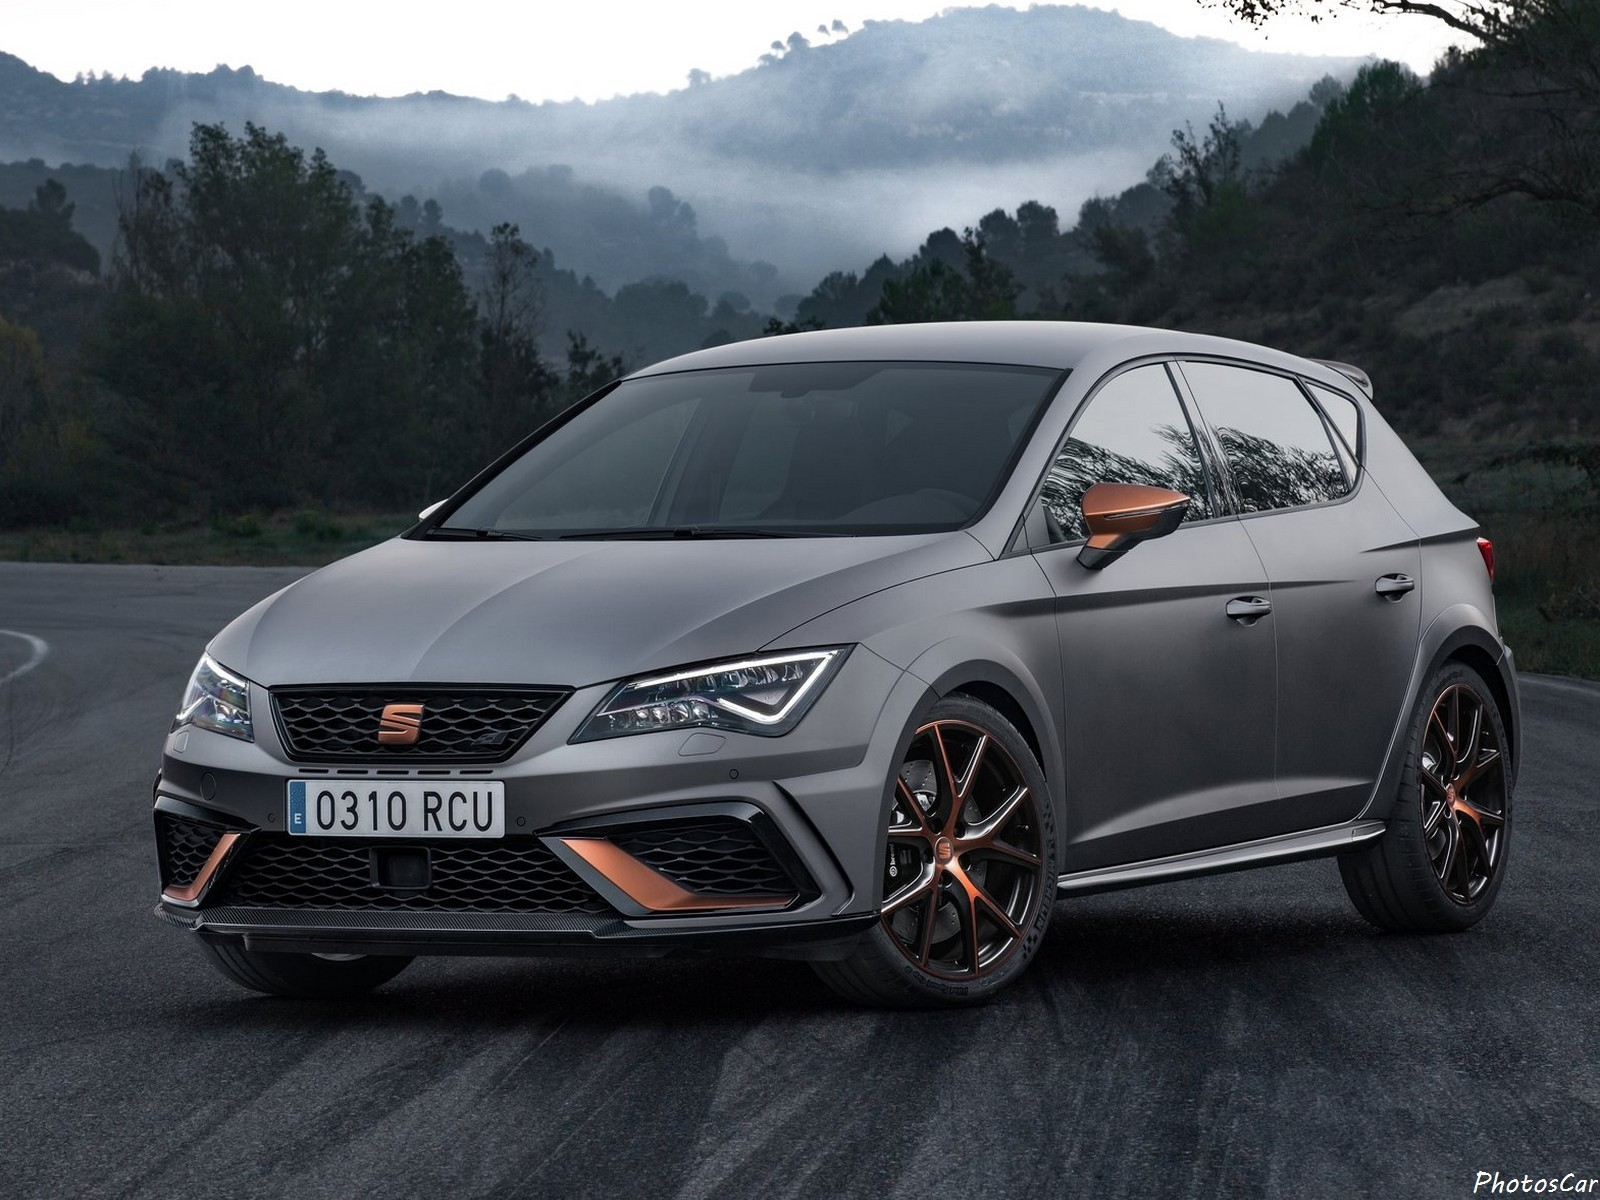 seat leon cupra r 2018 photoscar. Black Bedroom Furniture Sets. Home Design Ideas